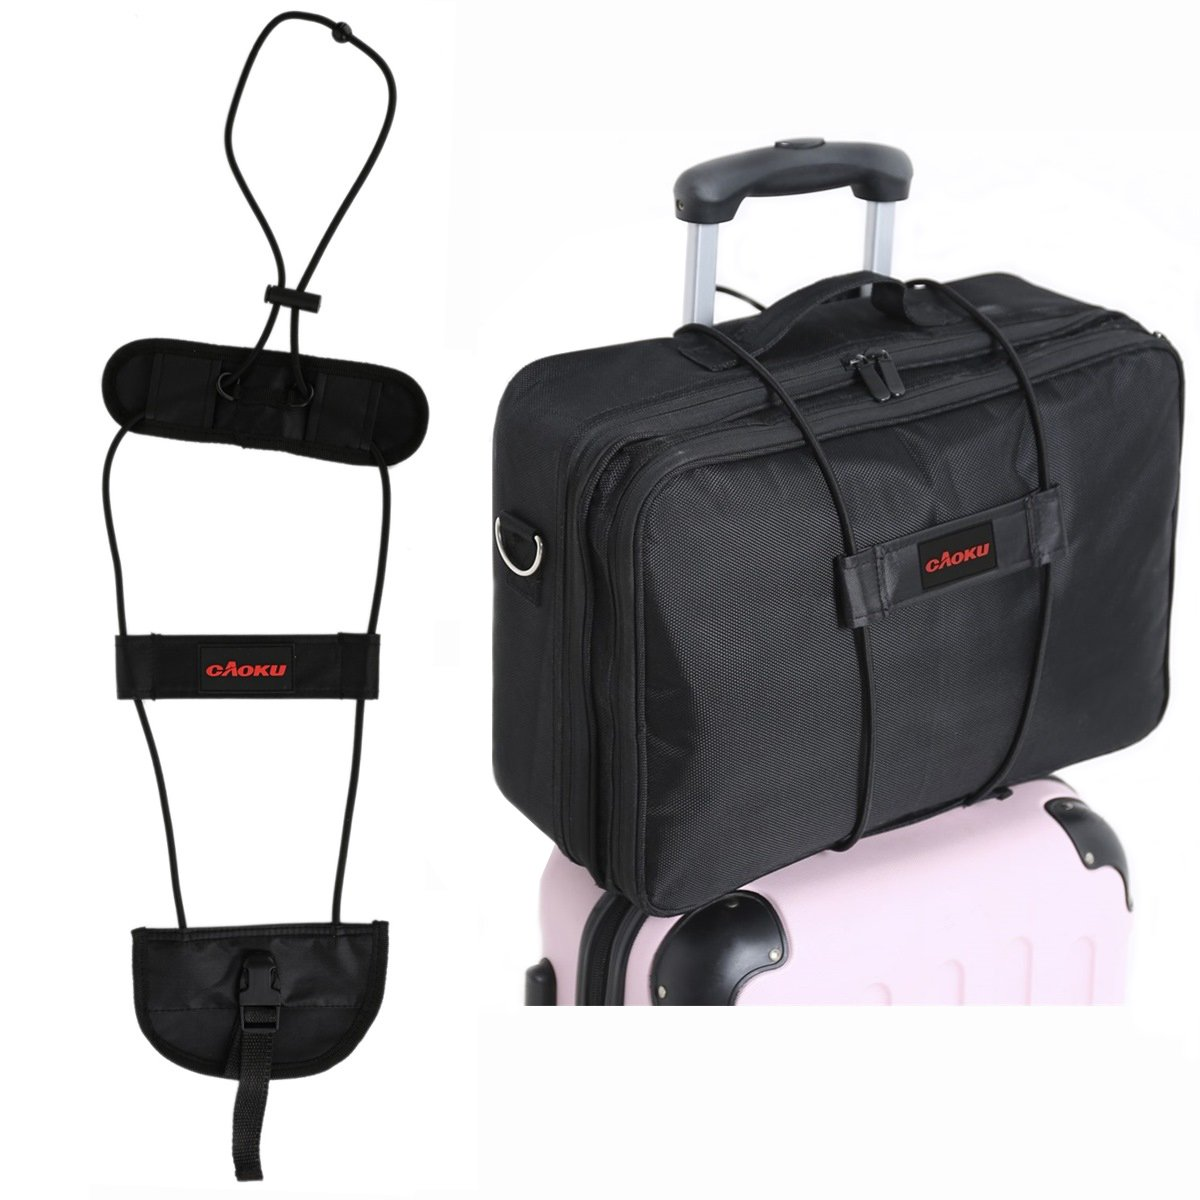 Bag Bungee Carrying On Luggage cAoku Adjustable Belt On Travel Luggage Suitcase With Elastic Strapping (2-Pack)